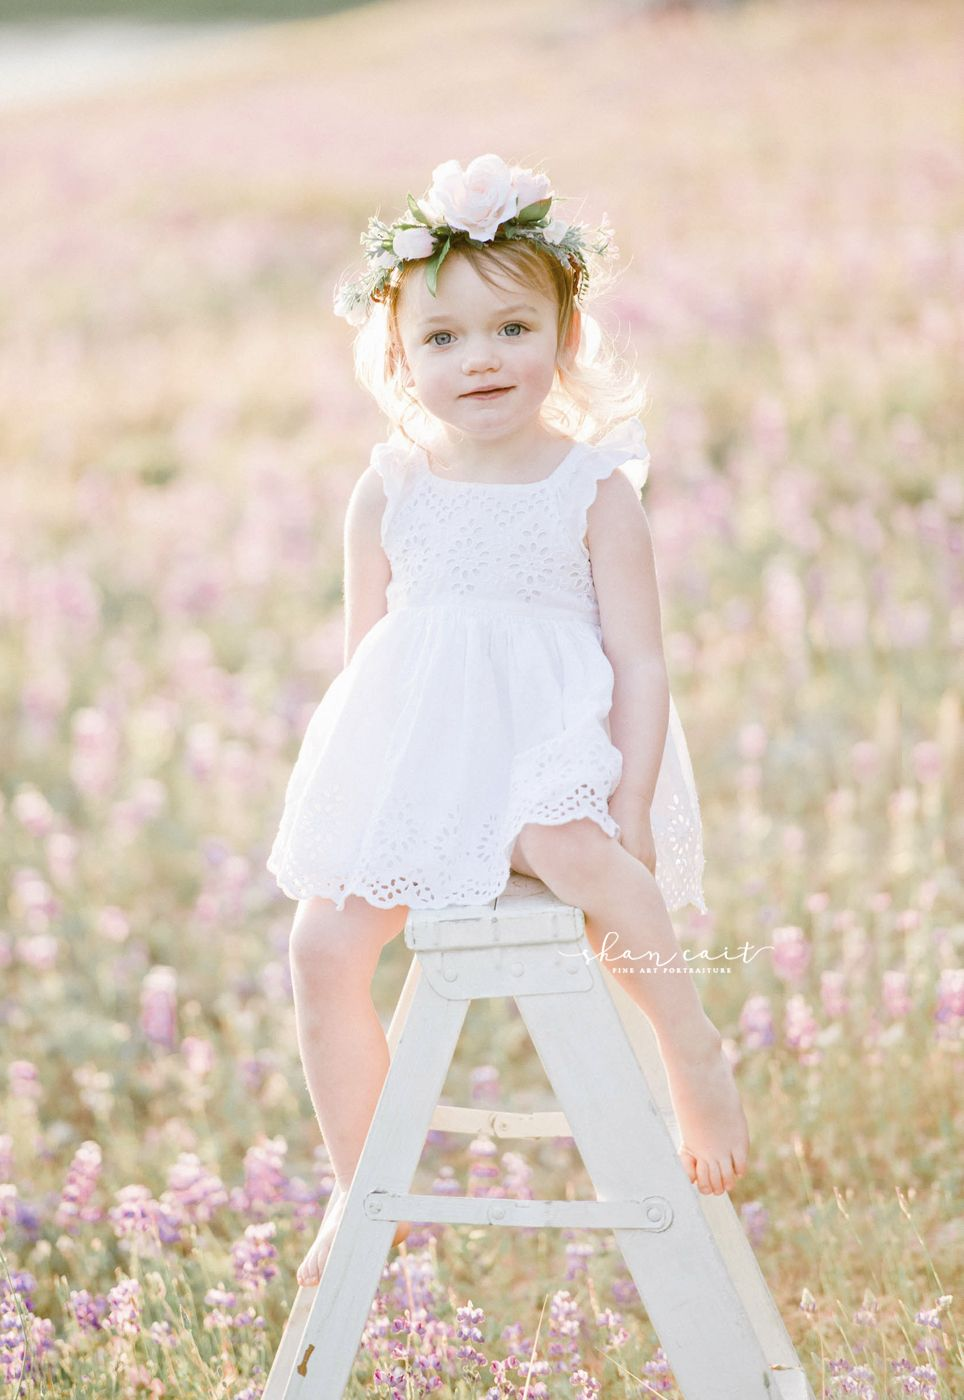 childhood portrait, shan cait photography, little girl dress inspiration, 2  year old photoshoot ideas, … | Girl photo shoots, Baby girl white dress, Baby  photoshoot